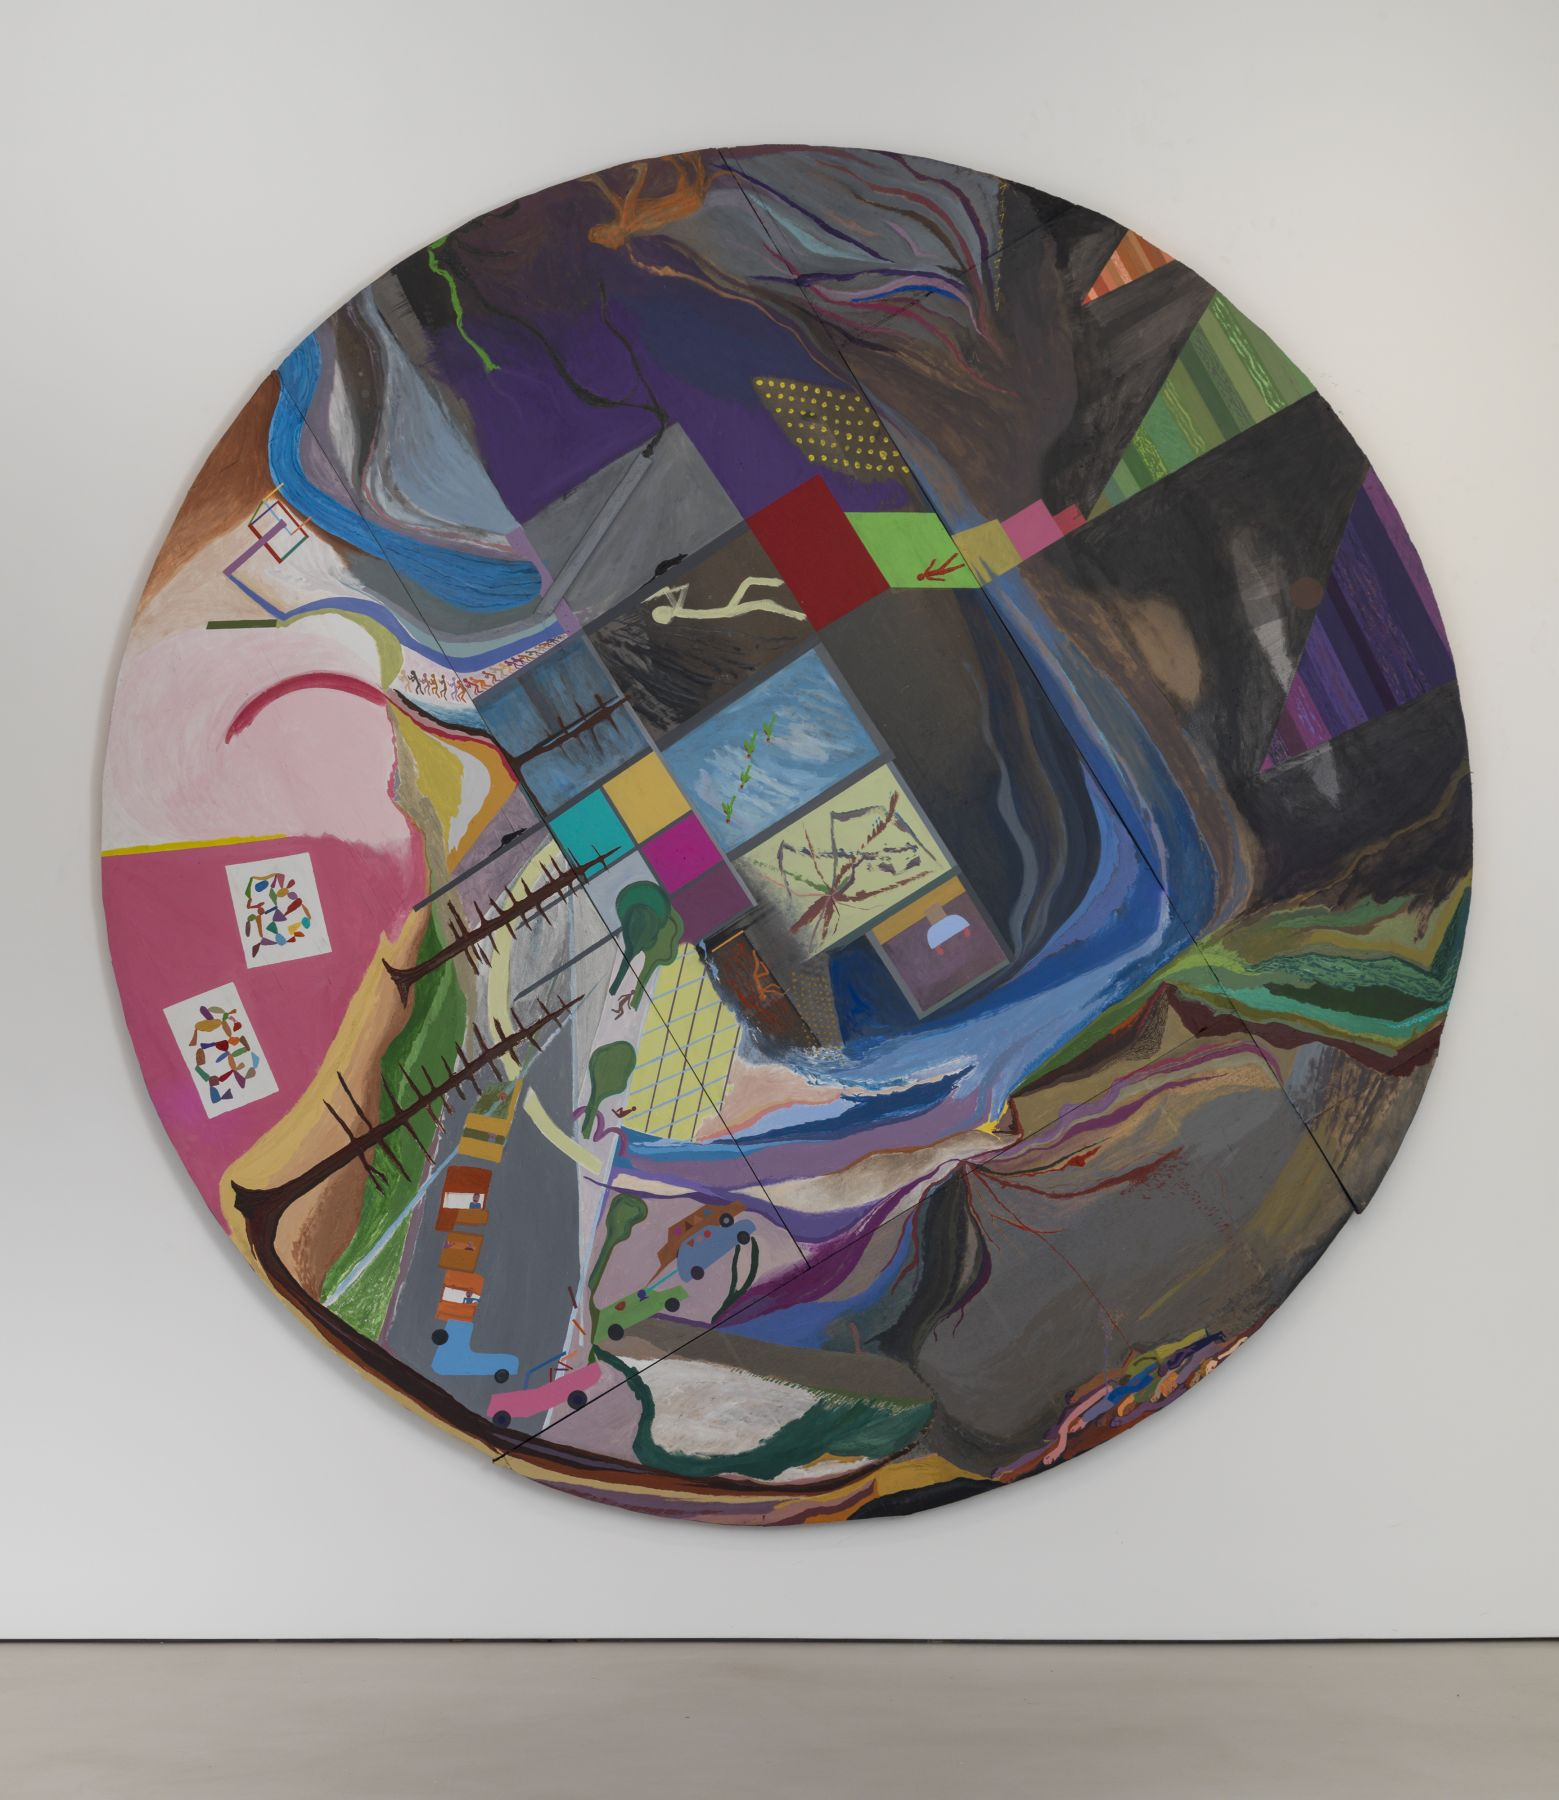 CHRIS JOHANSON Circular painting #1 about infinity and square and circular energy